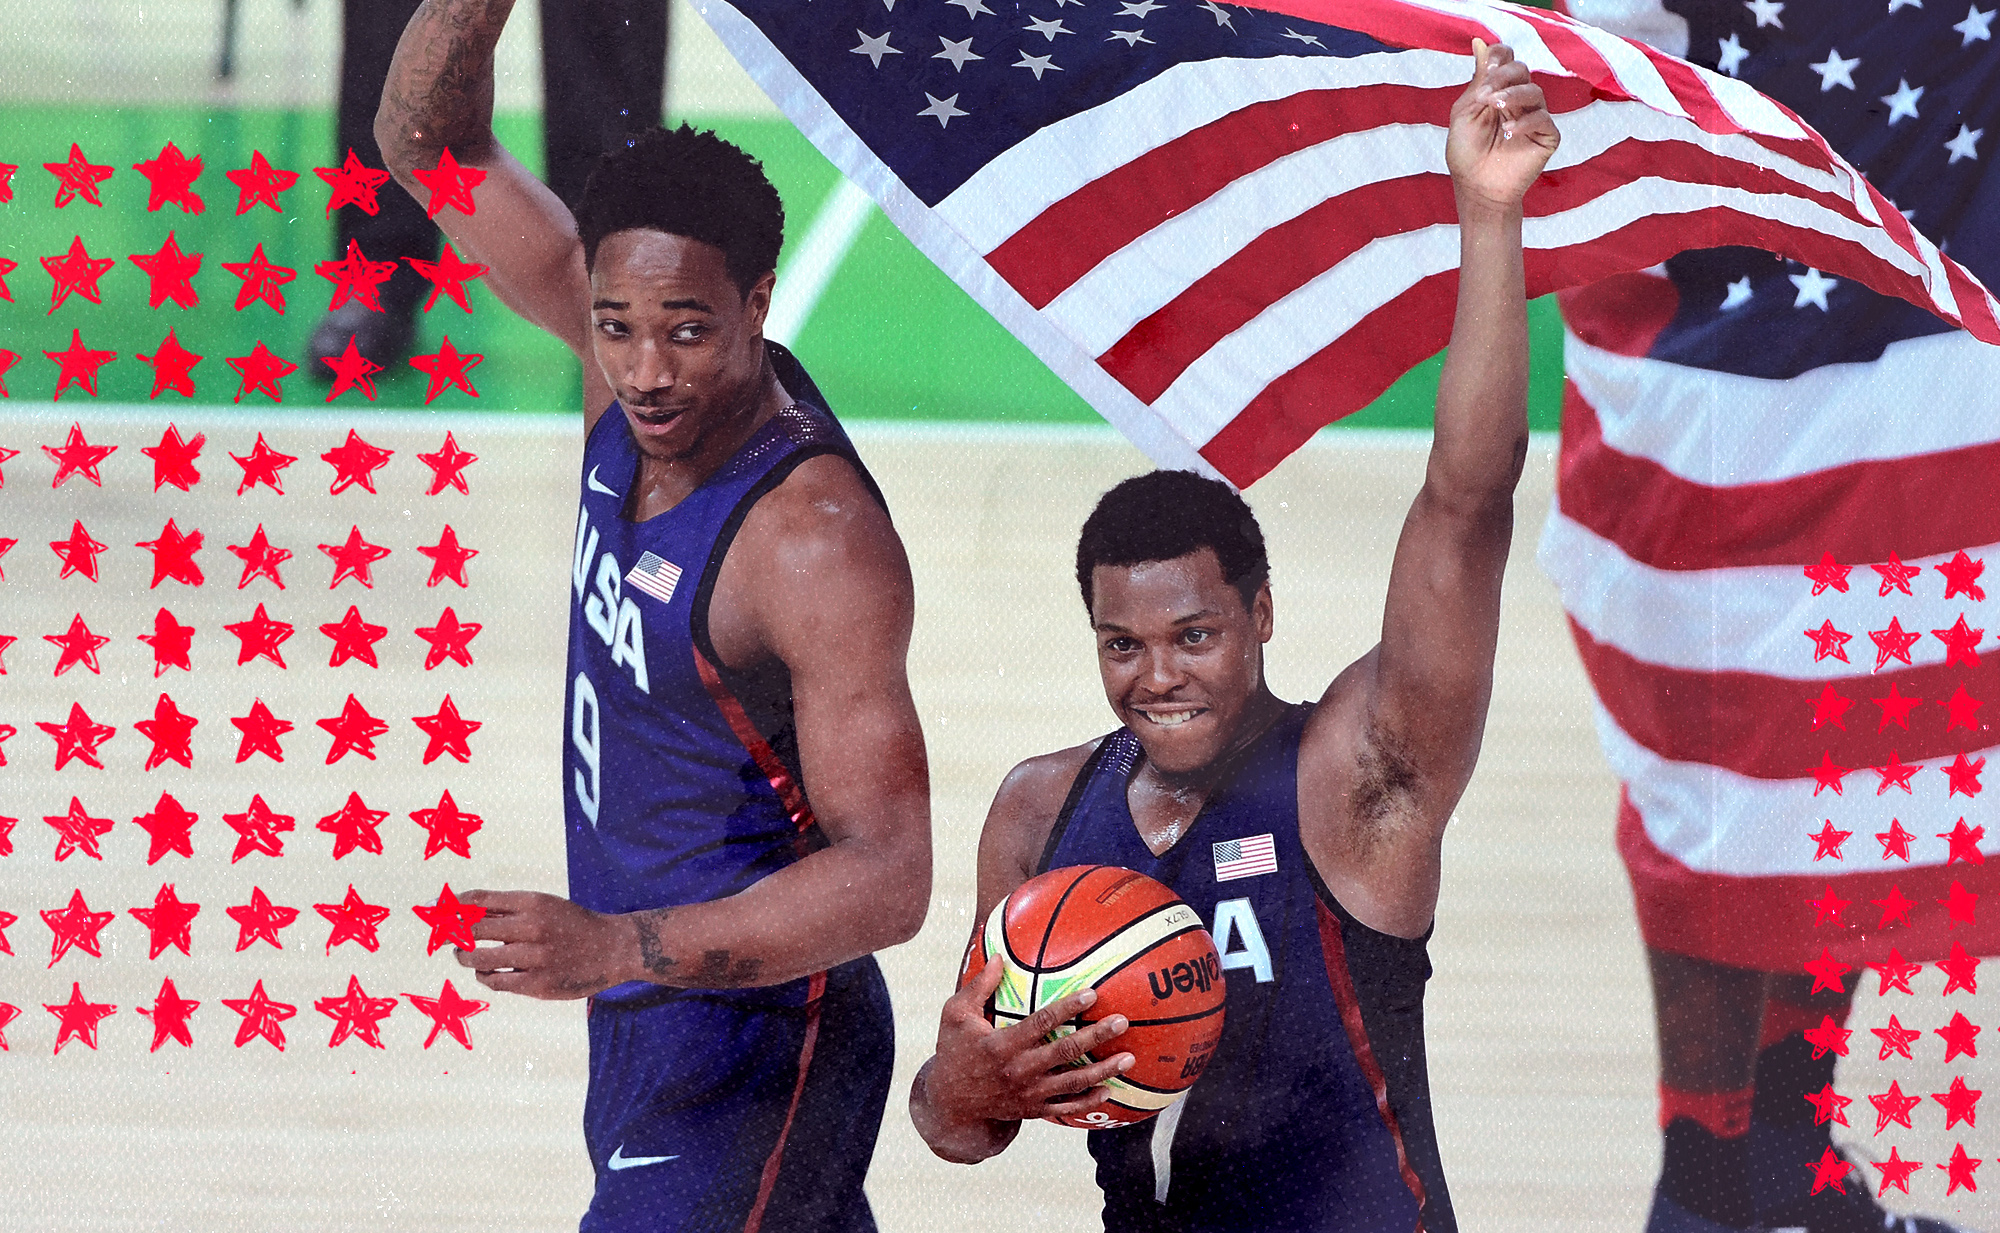 DeMar DeRozan, left, and Kyle Lowry representing USA Basketball celebrate while holding the U.S. flag.